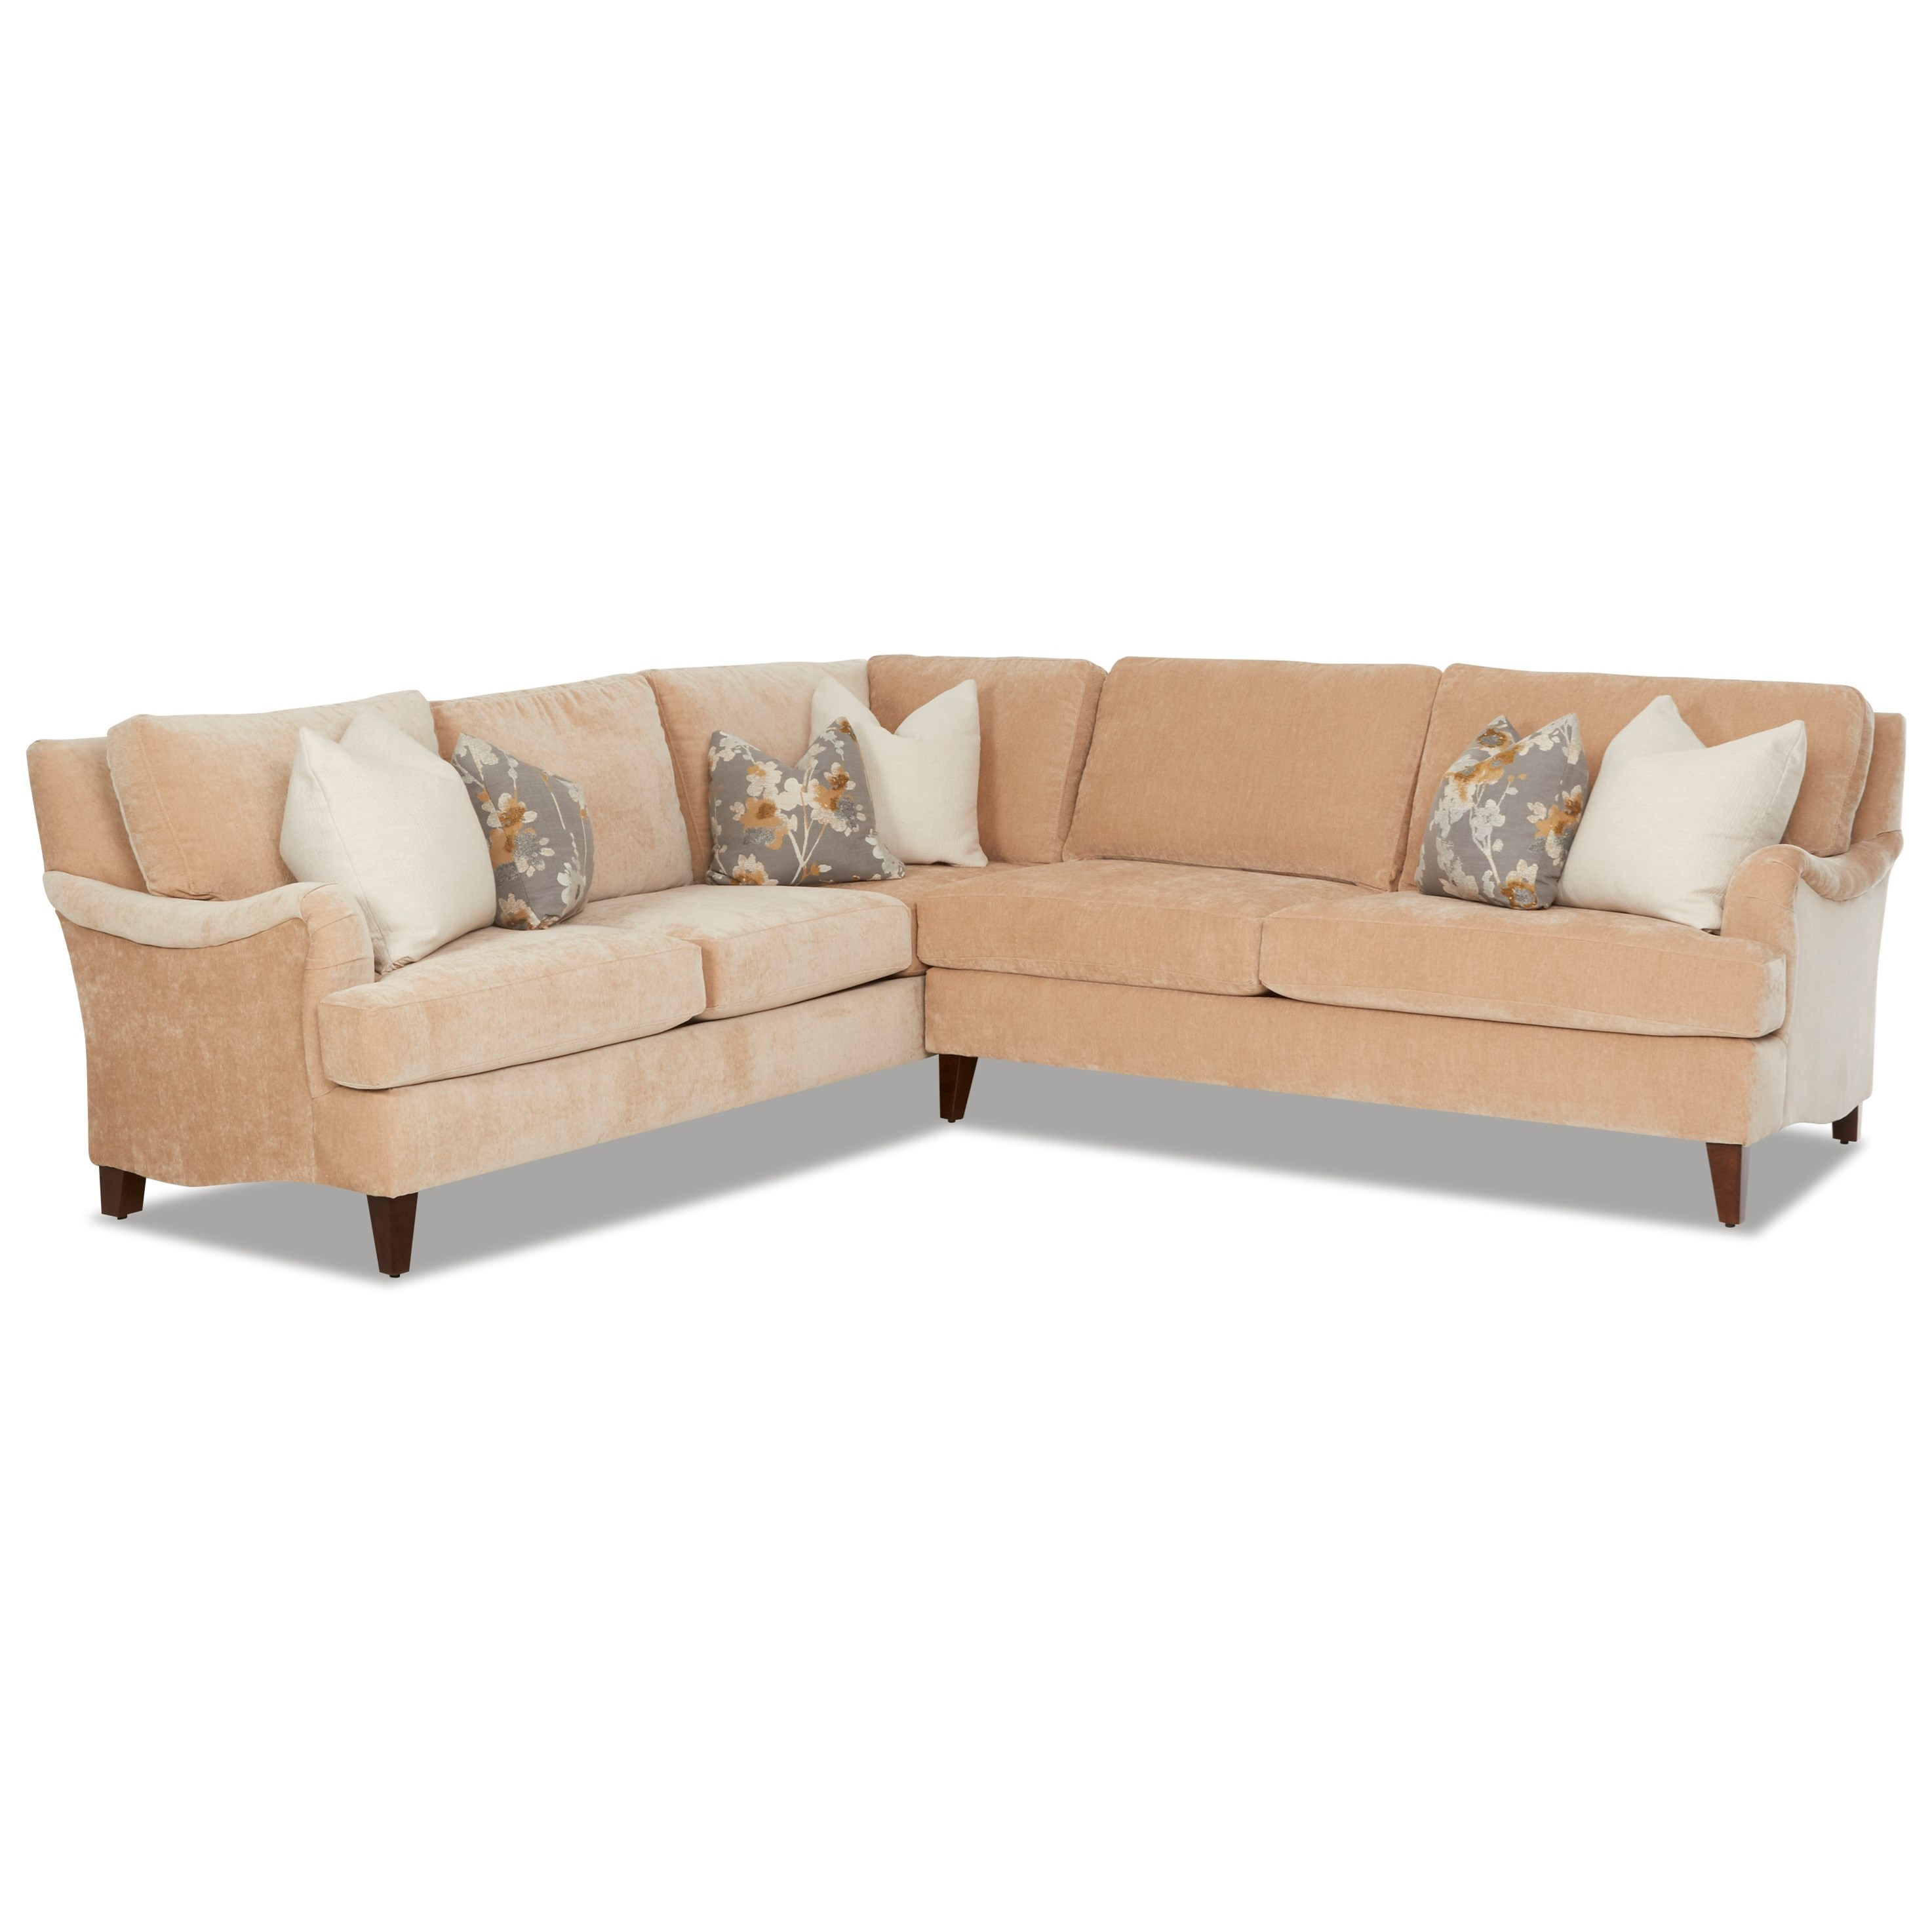 Alden 2-Piece Sectional by Klaussner at Catalog Outlet